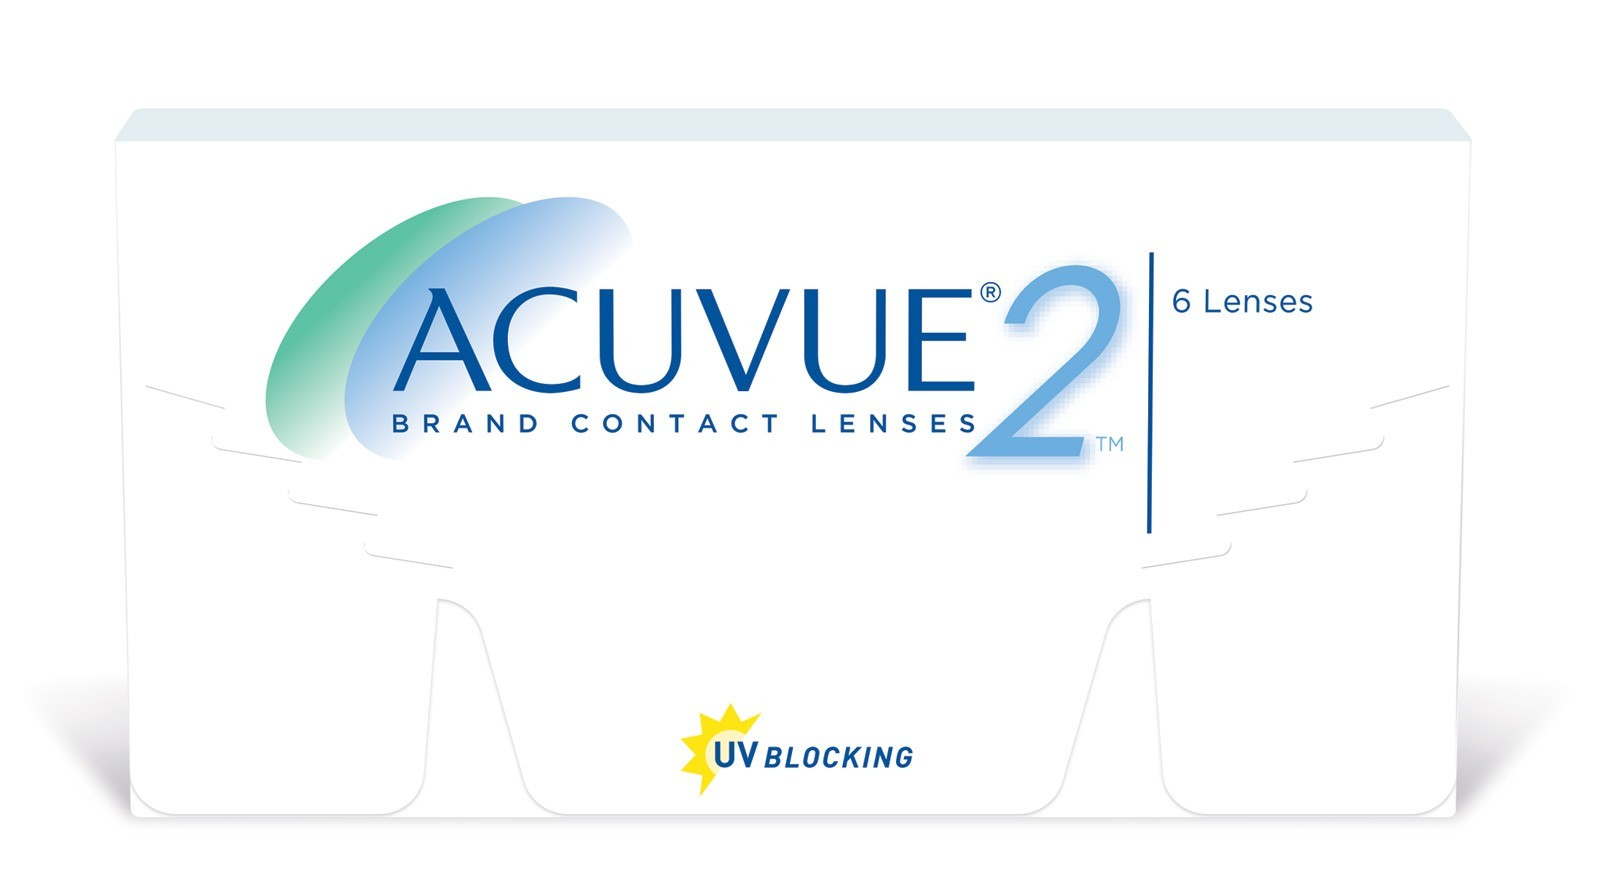 acuvue lens: